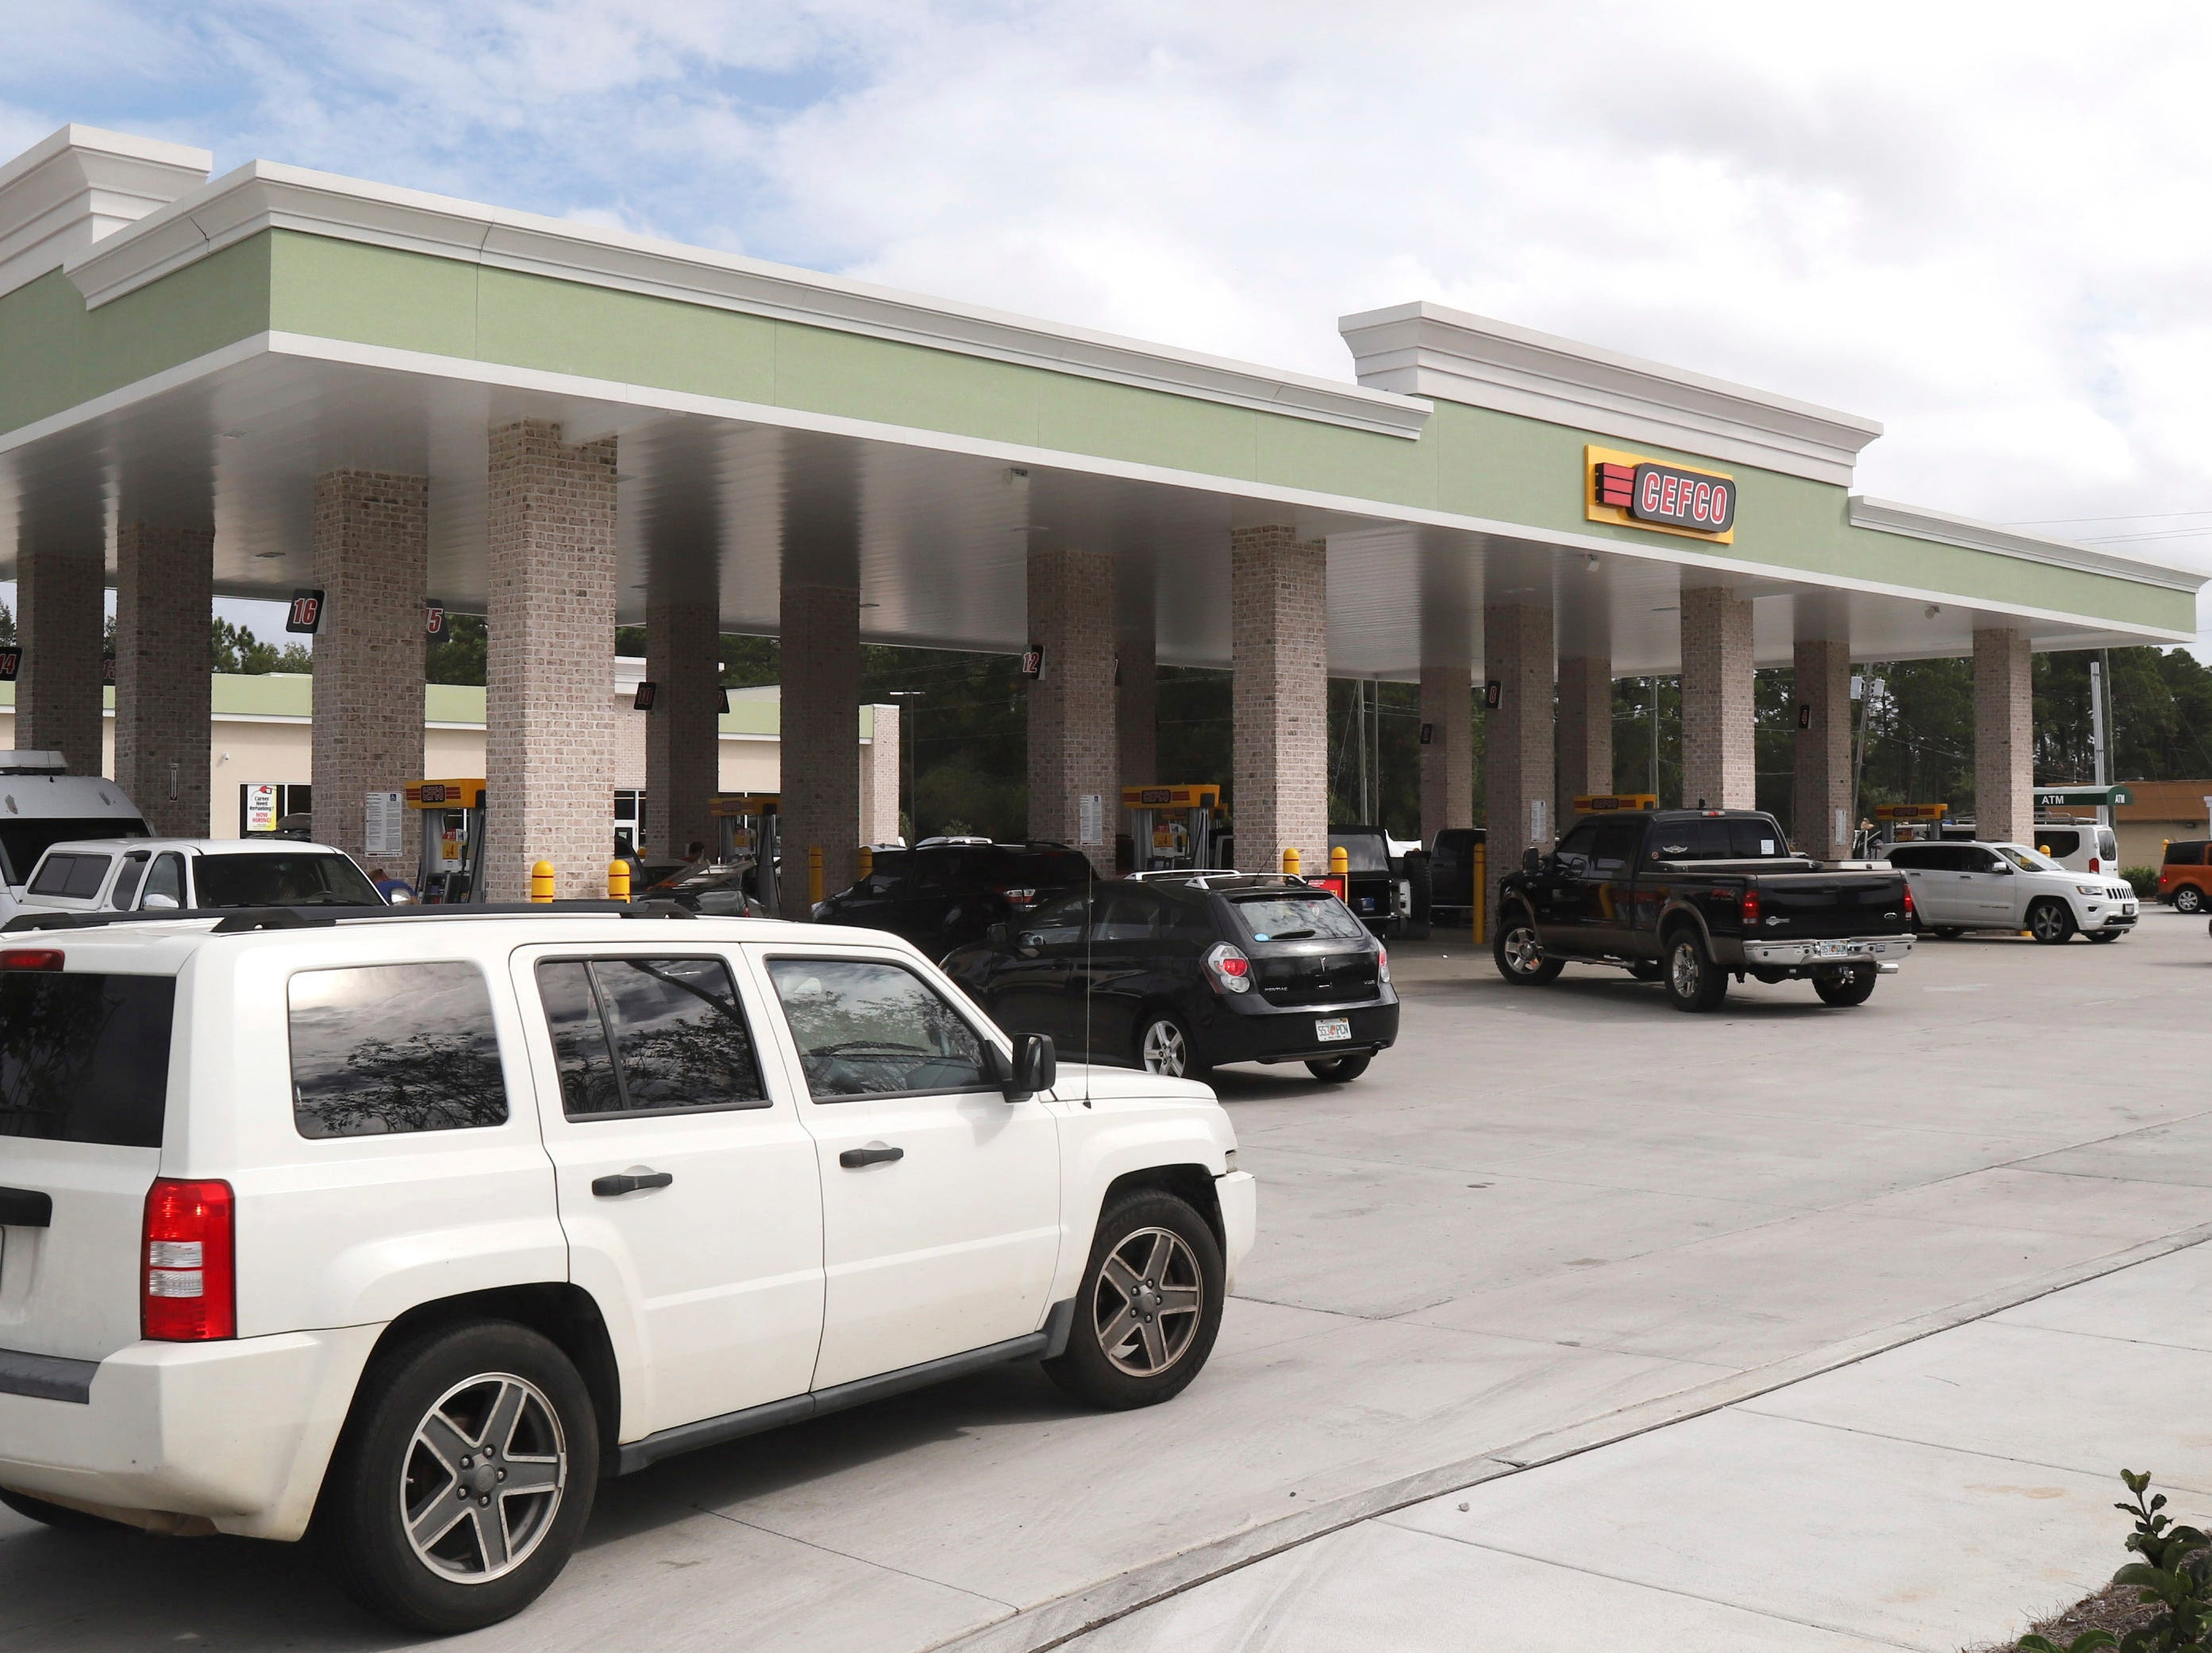 Cars jockey for position at the CEFCO gas station at County Road 393 and U.S. Highway 98 in South Walton County in Santa Rosa Beach, Fla., on Tues. Oct., 9, 2018.